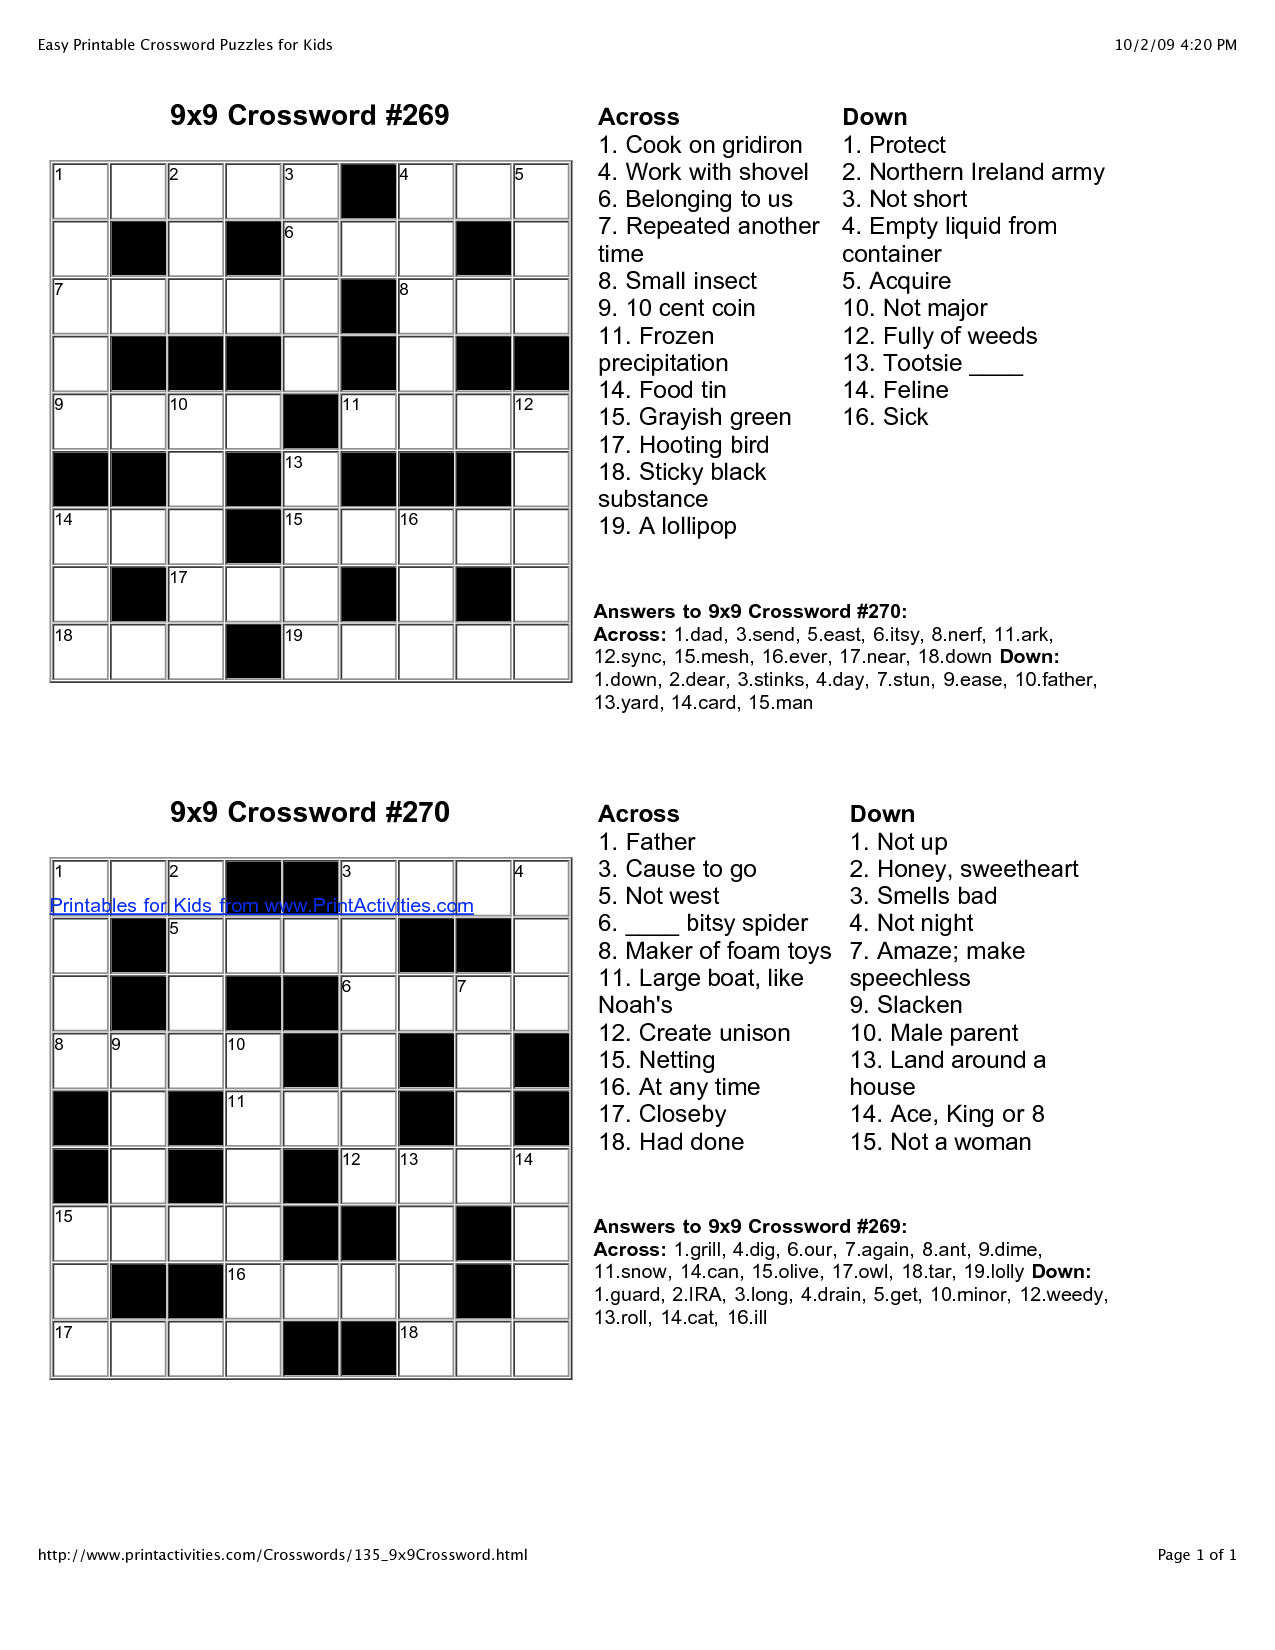 photo relating to Printable Easy Crossword Puzzles identify Printable Crosswords For 15 12 months Olds Printable Crossword